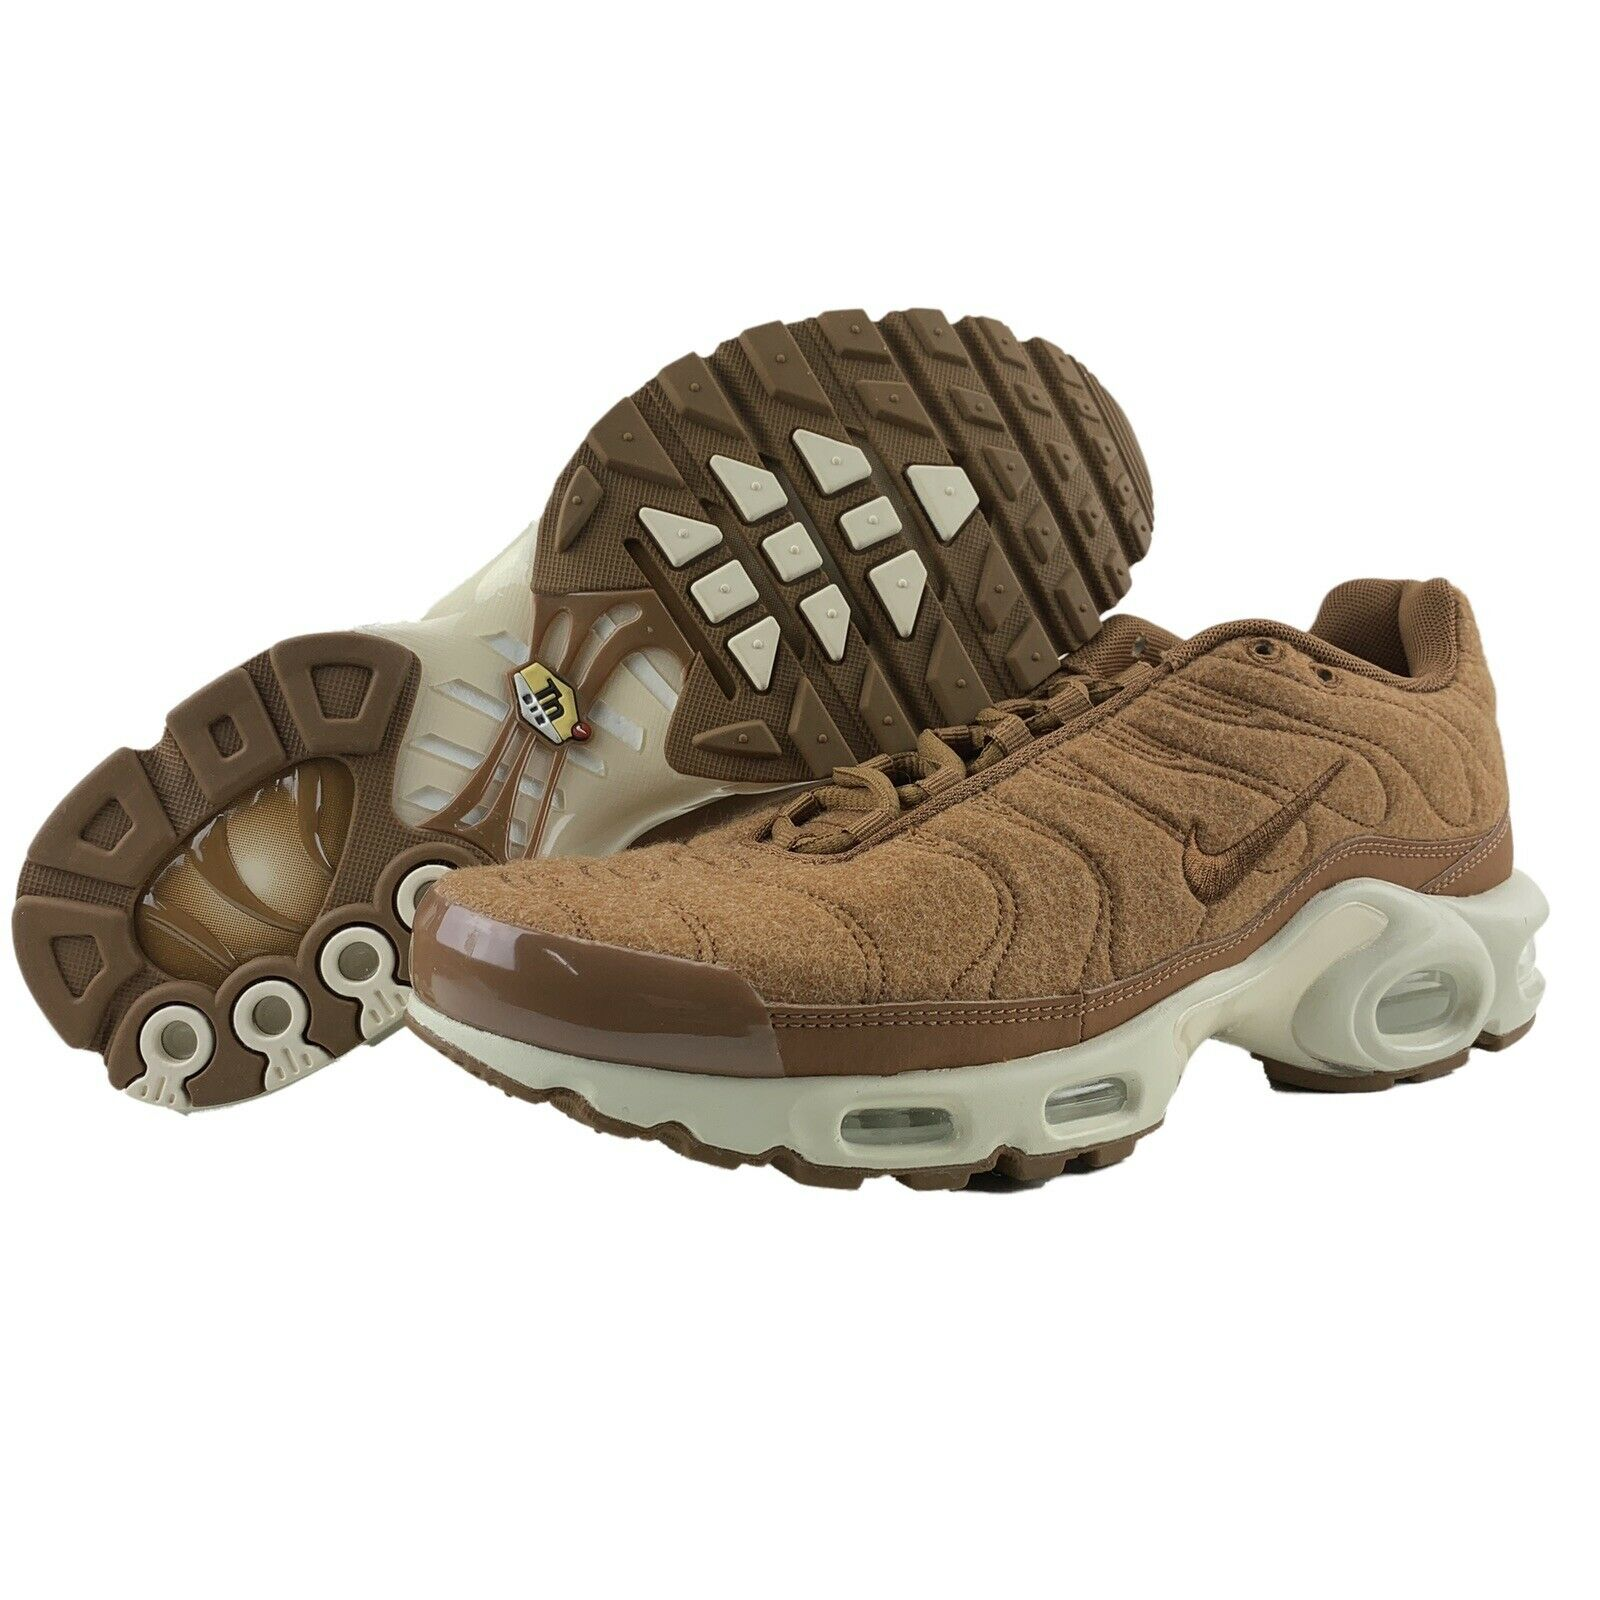 Nike Air Max Plus TN Size 9 Mens Quilted Ale Brown Sail Running shoes Women 10.5